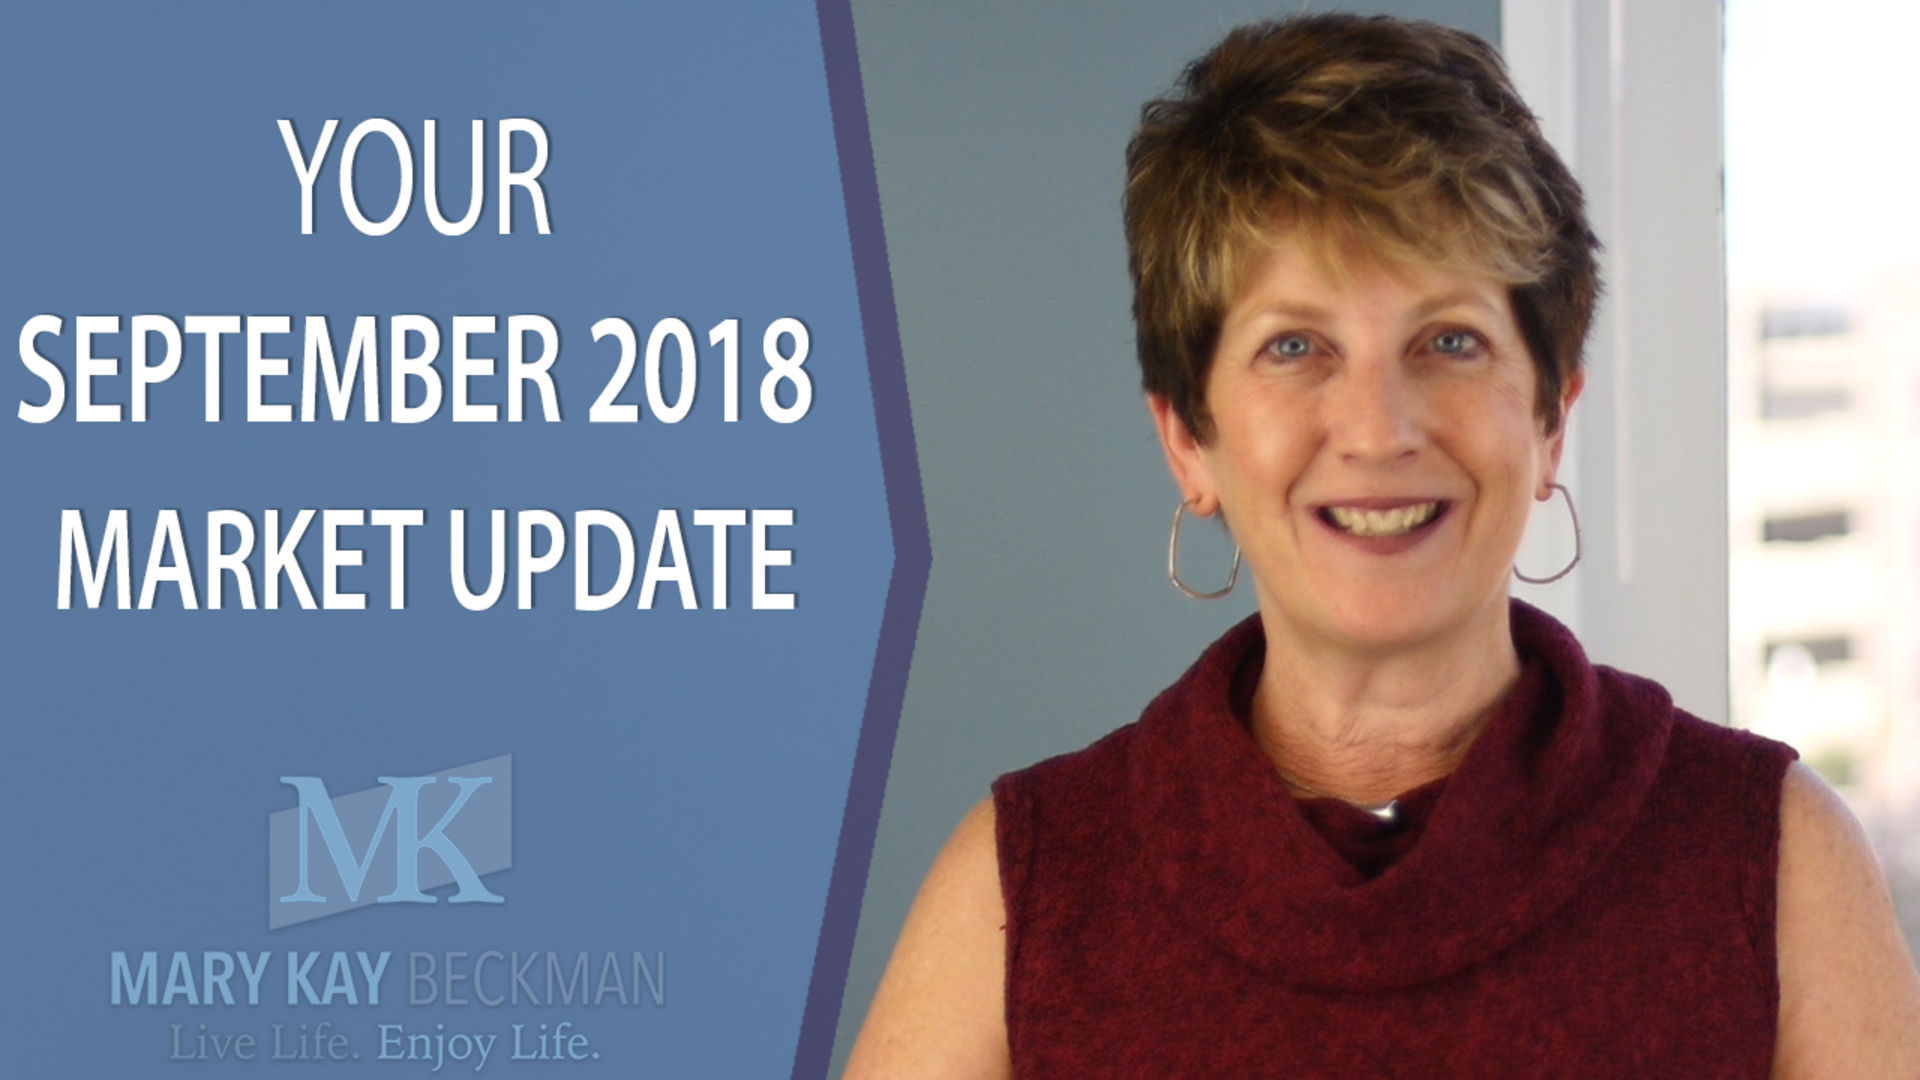 Your September 2018 Market Update